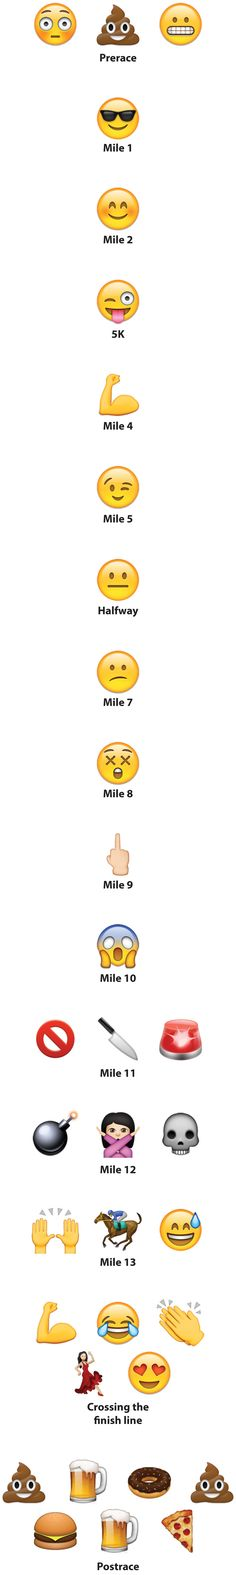 Running a Half Marathon as Told by Emojis  http://www.runnersworld.com/half-marathon/running-a-half-marathon-as-told-by-emojis?cid=soc_Runner%2527s%2520World%2520-%2520RunnersWorld_FBPAGE_Runner%25E2%2580%2599s%2520World__Motivation_HalfMarathonTraining